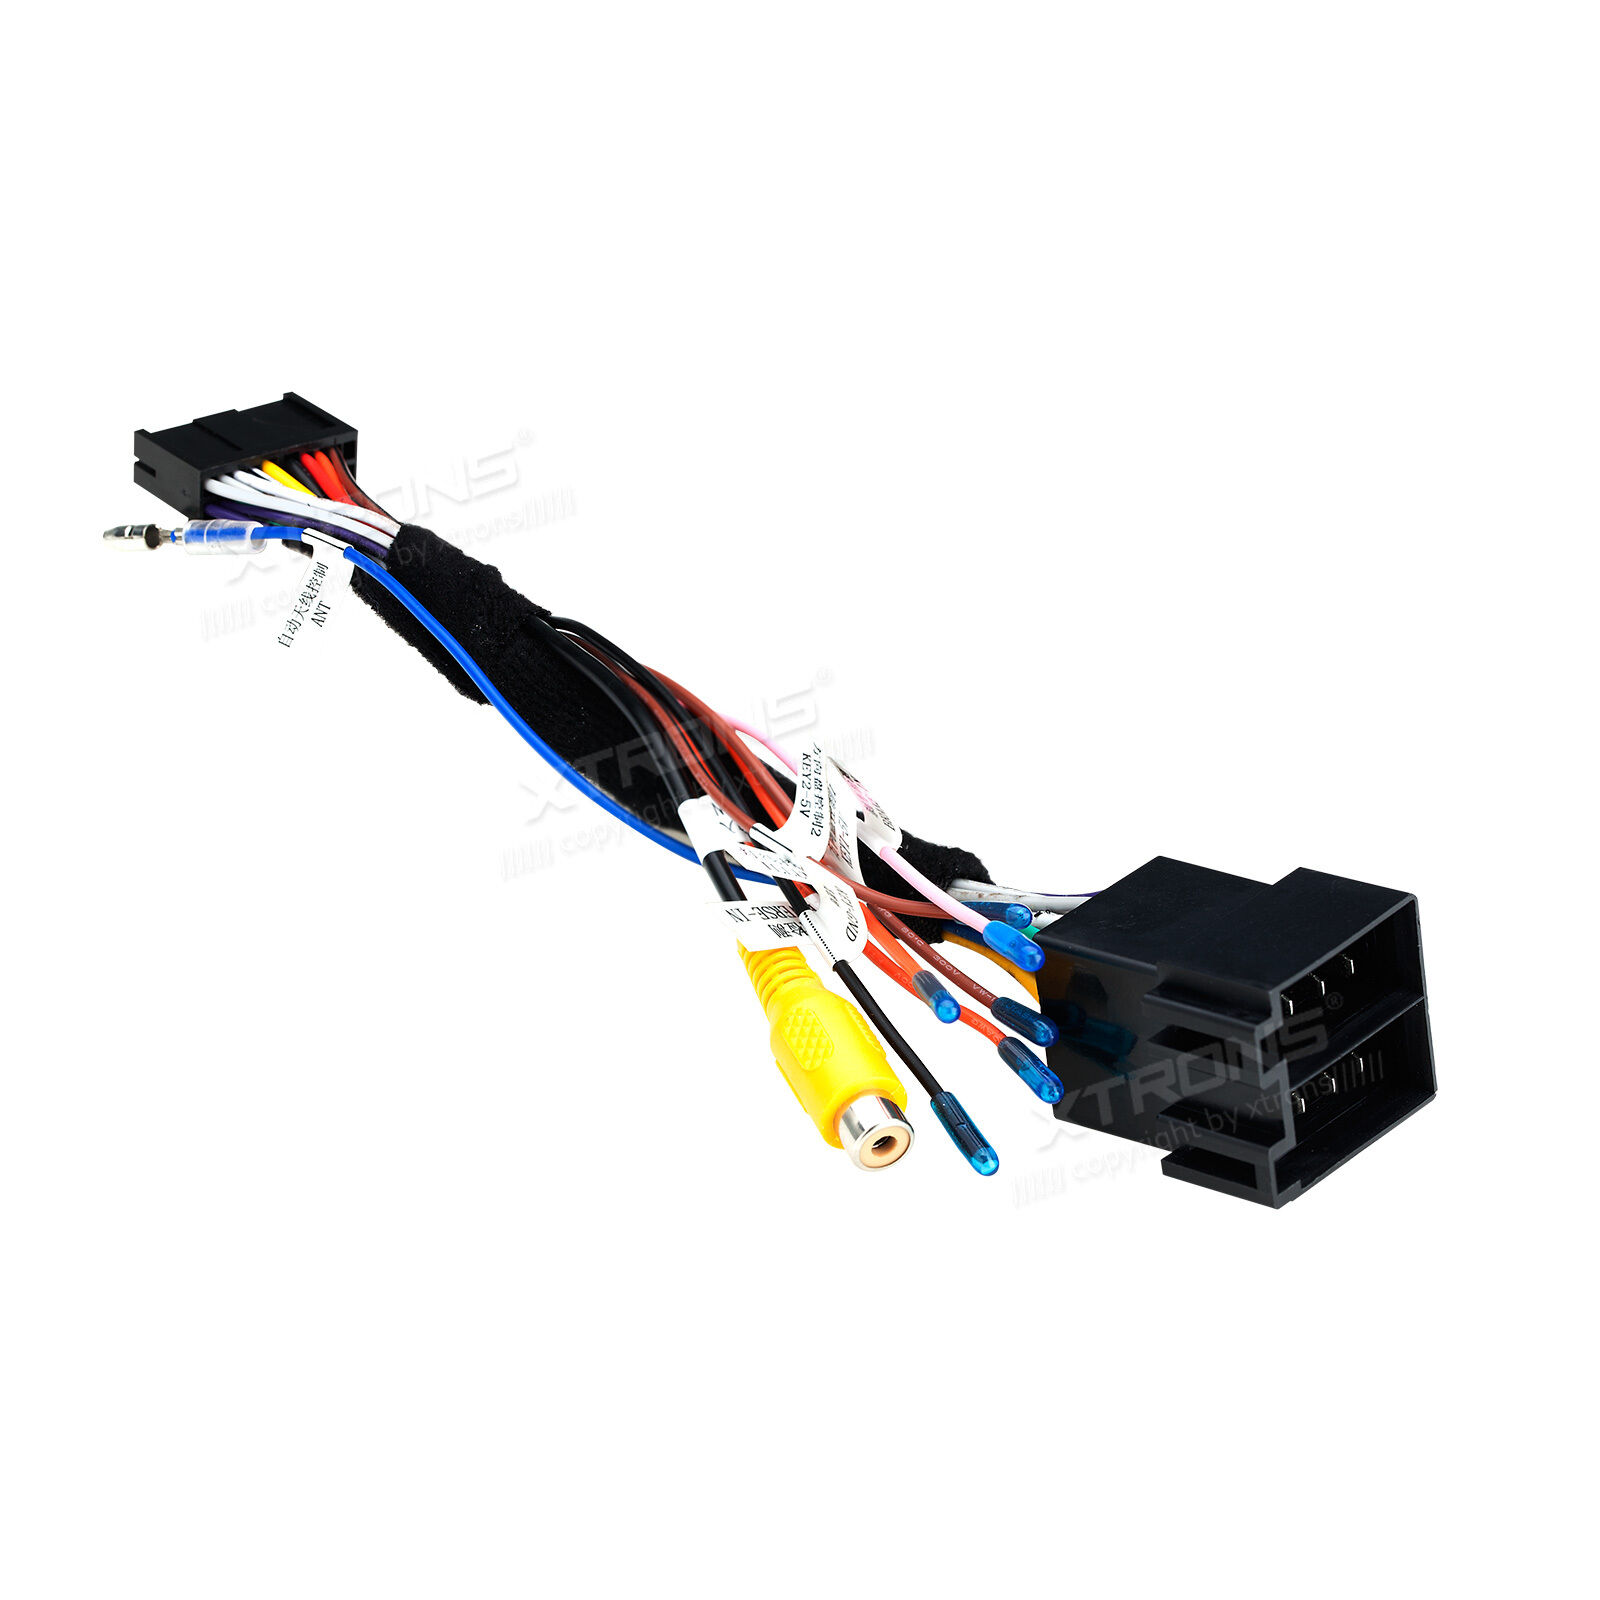 s l1600 xtrons bmw e46 units rover75 mg zt factory radio iso wire wiring pioneer wiring harness adapter at alyssarenee.co